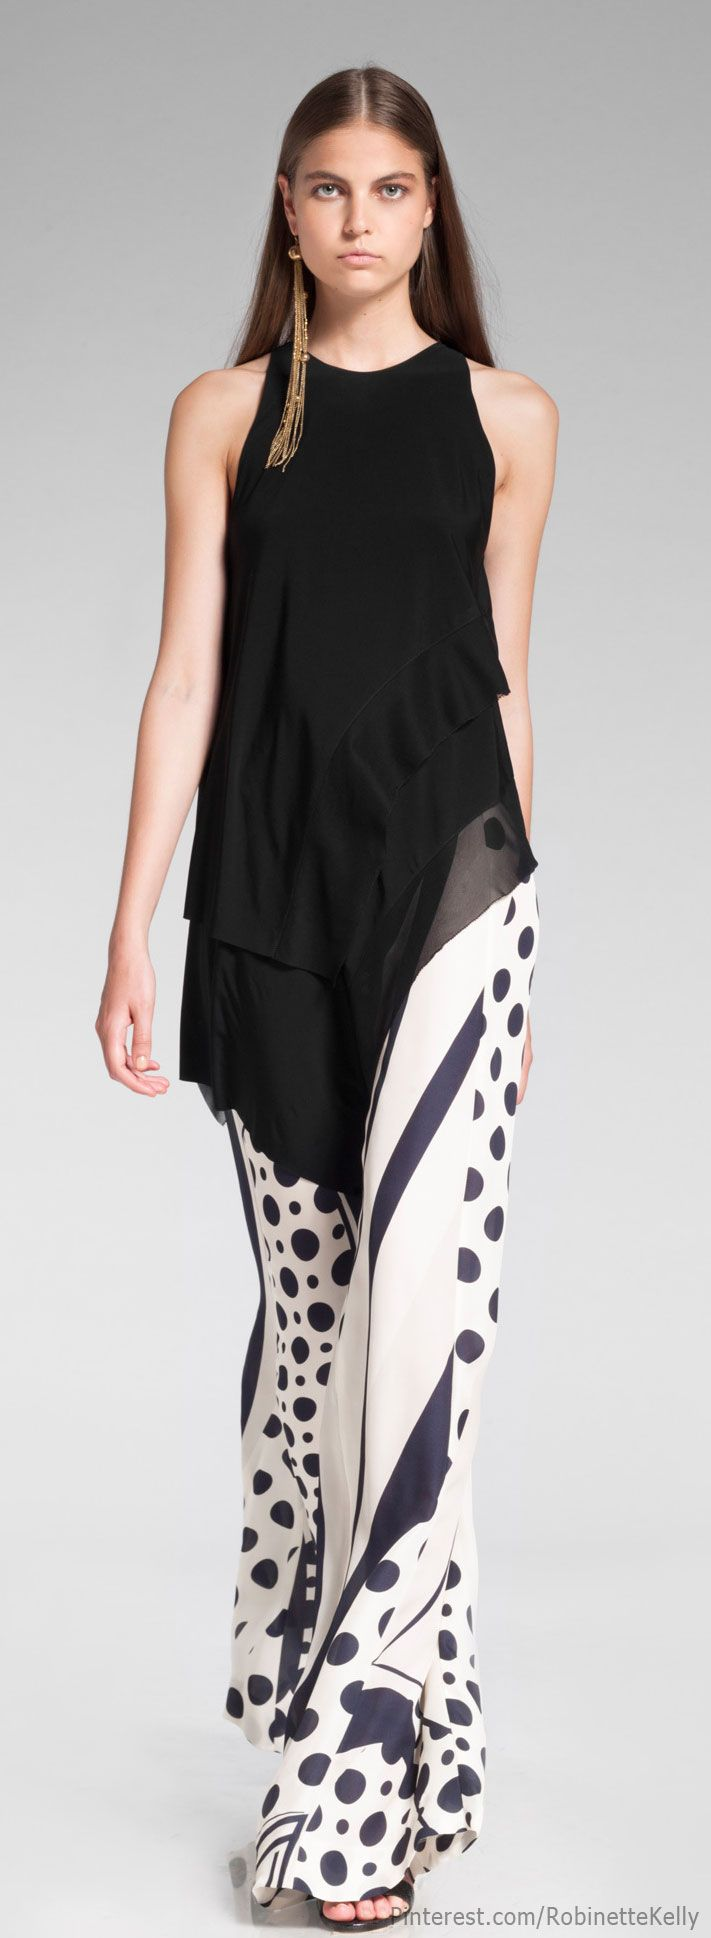 Donna Karan Resort 2014 Must Have This http;//haveheartdaily.com